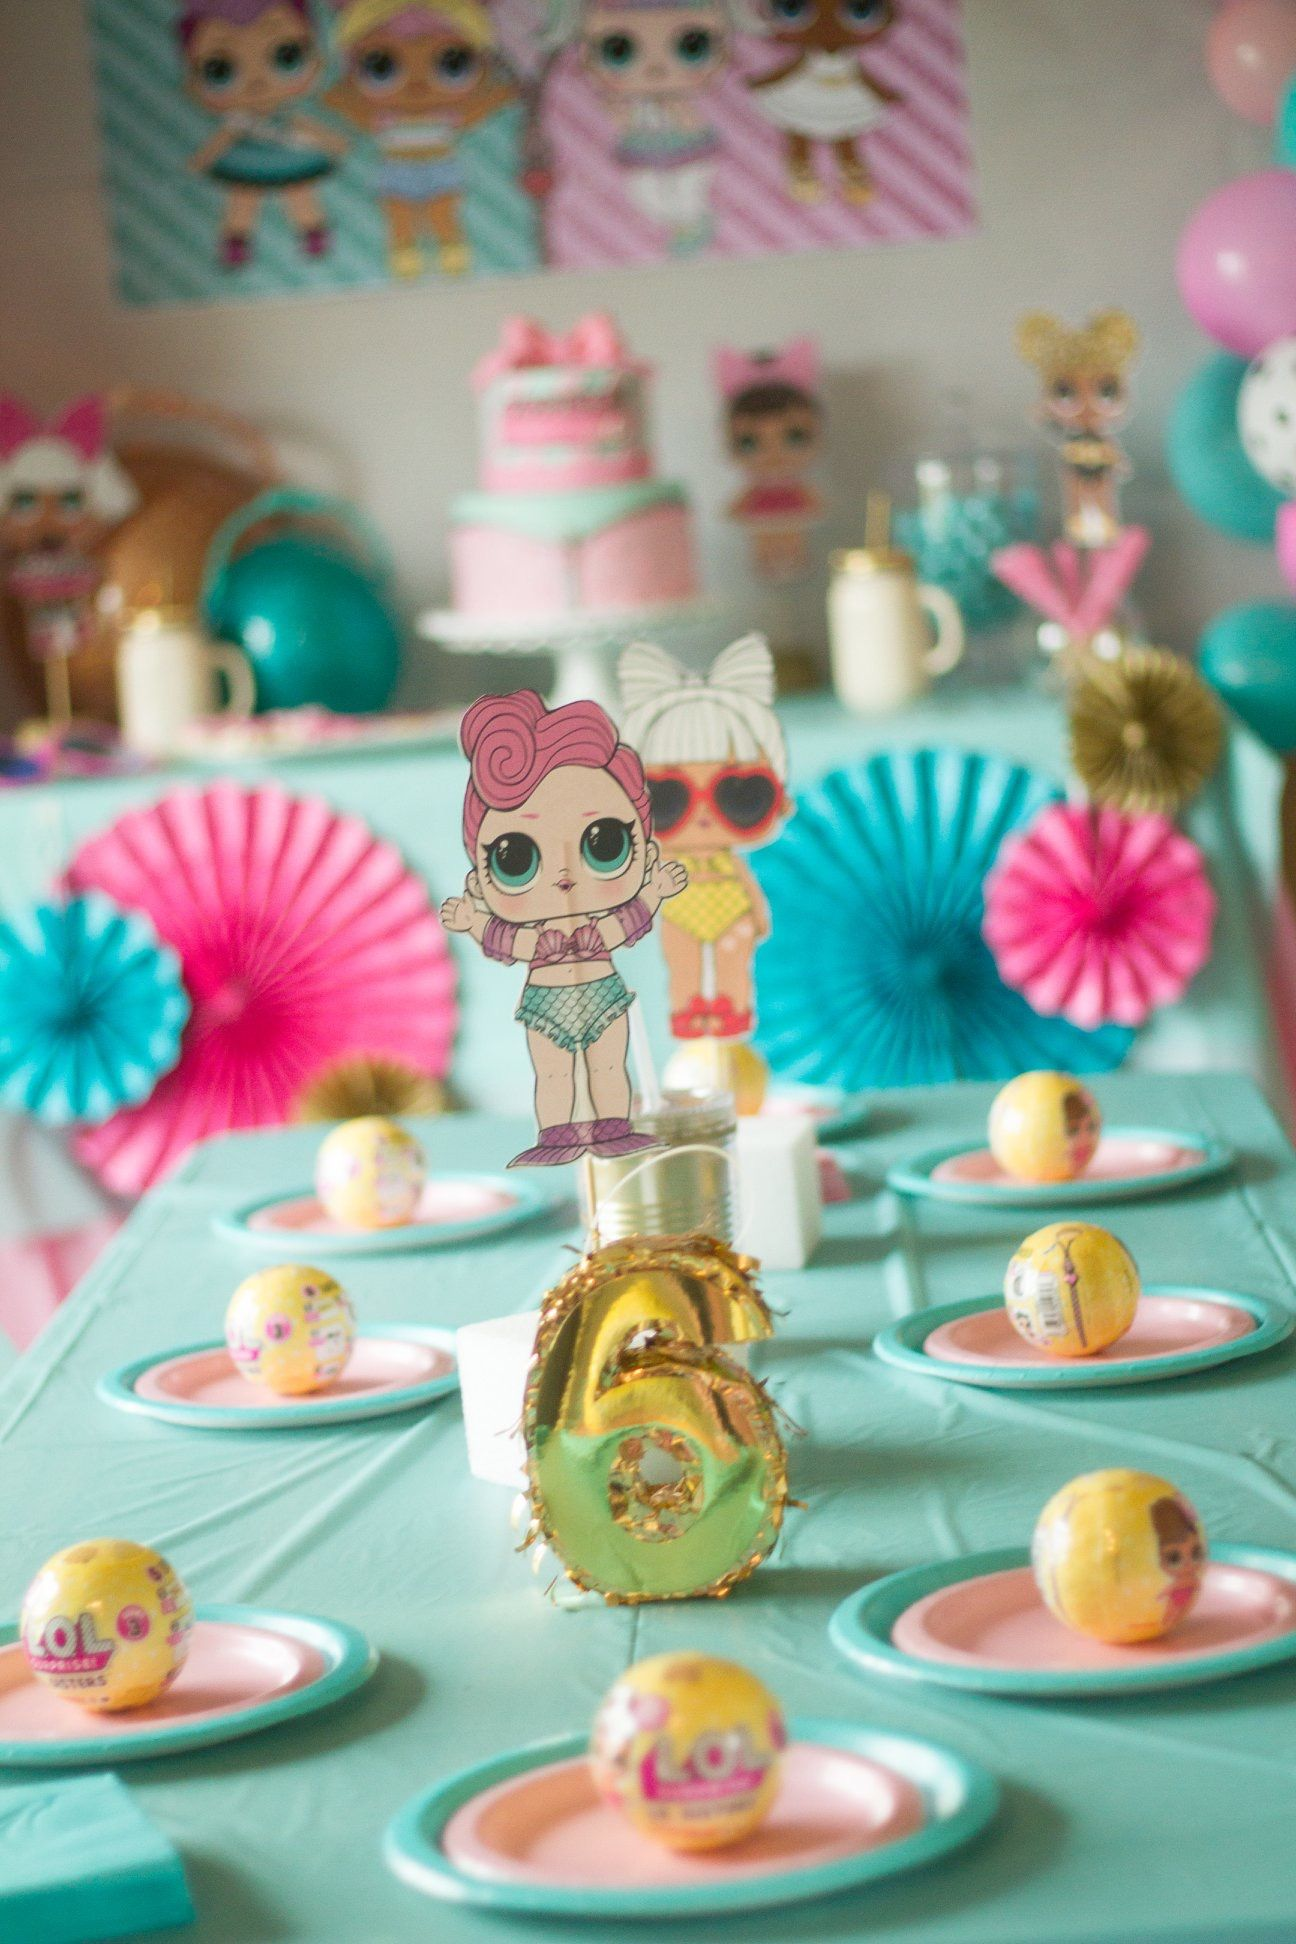 Swish Men Surprise Party Ideas Find This Pin 11 Year More On Lol Surprise Party Ideas By Pin By Christina Reyna On Lol Surprise Party Ideas Pinterest Surprise Party Ideas ideas Surprise Party Ideas